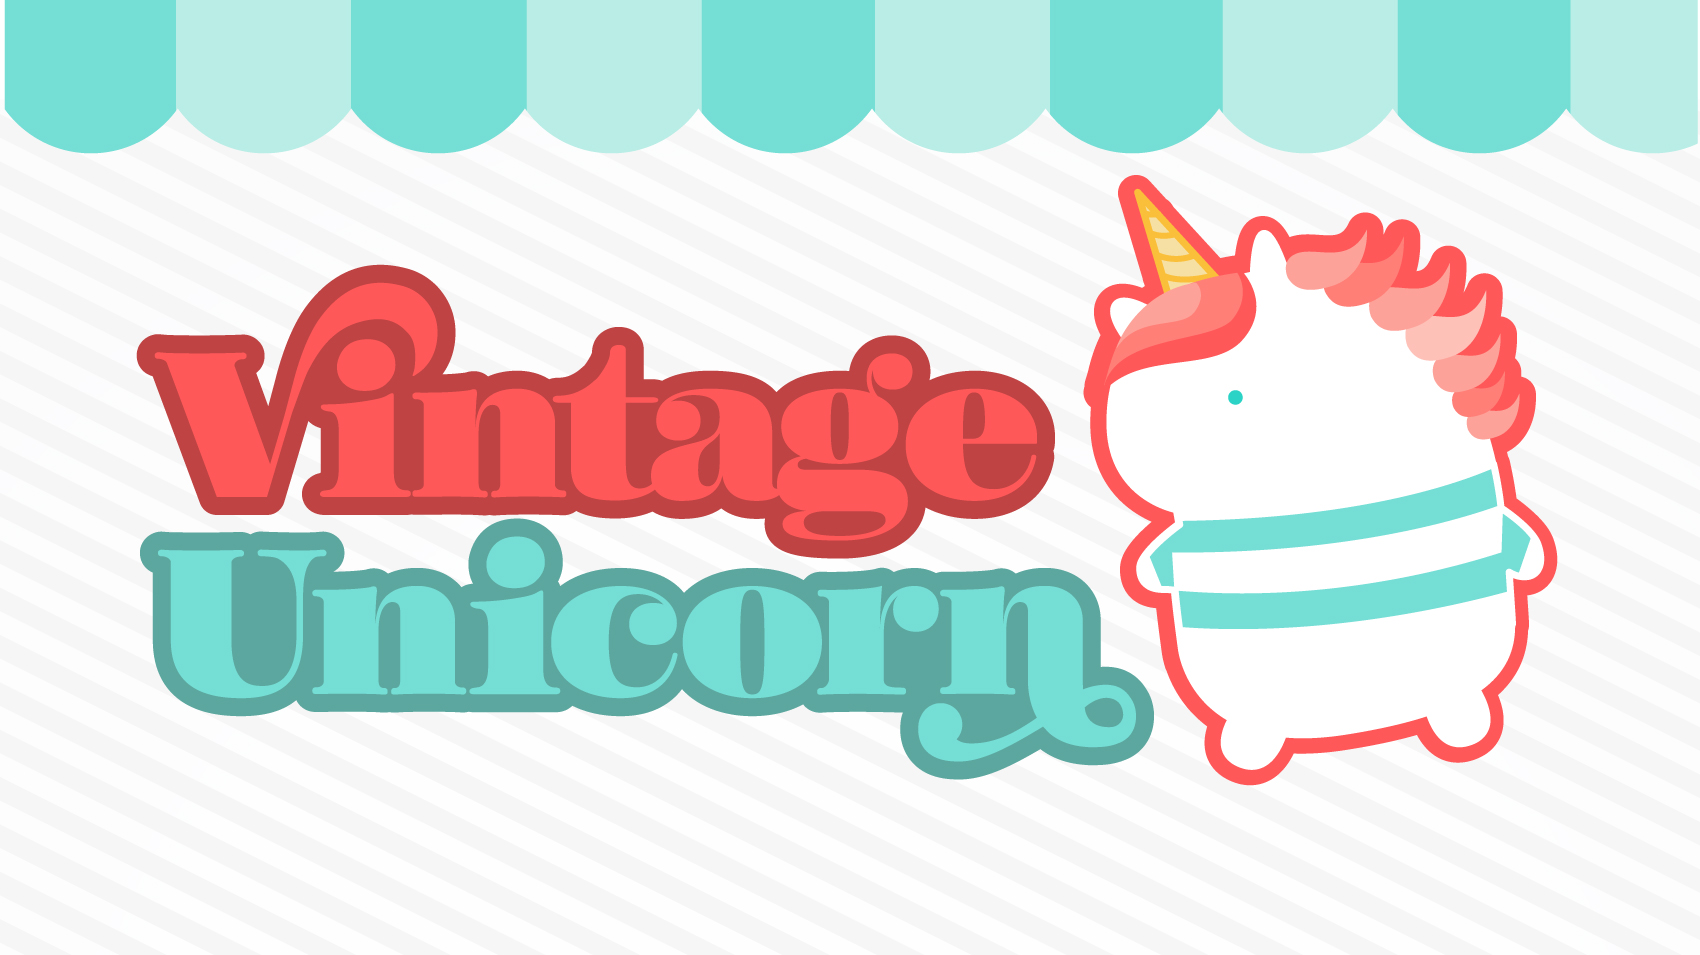 Vintage Unicorn Self promo logo design